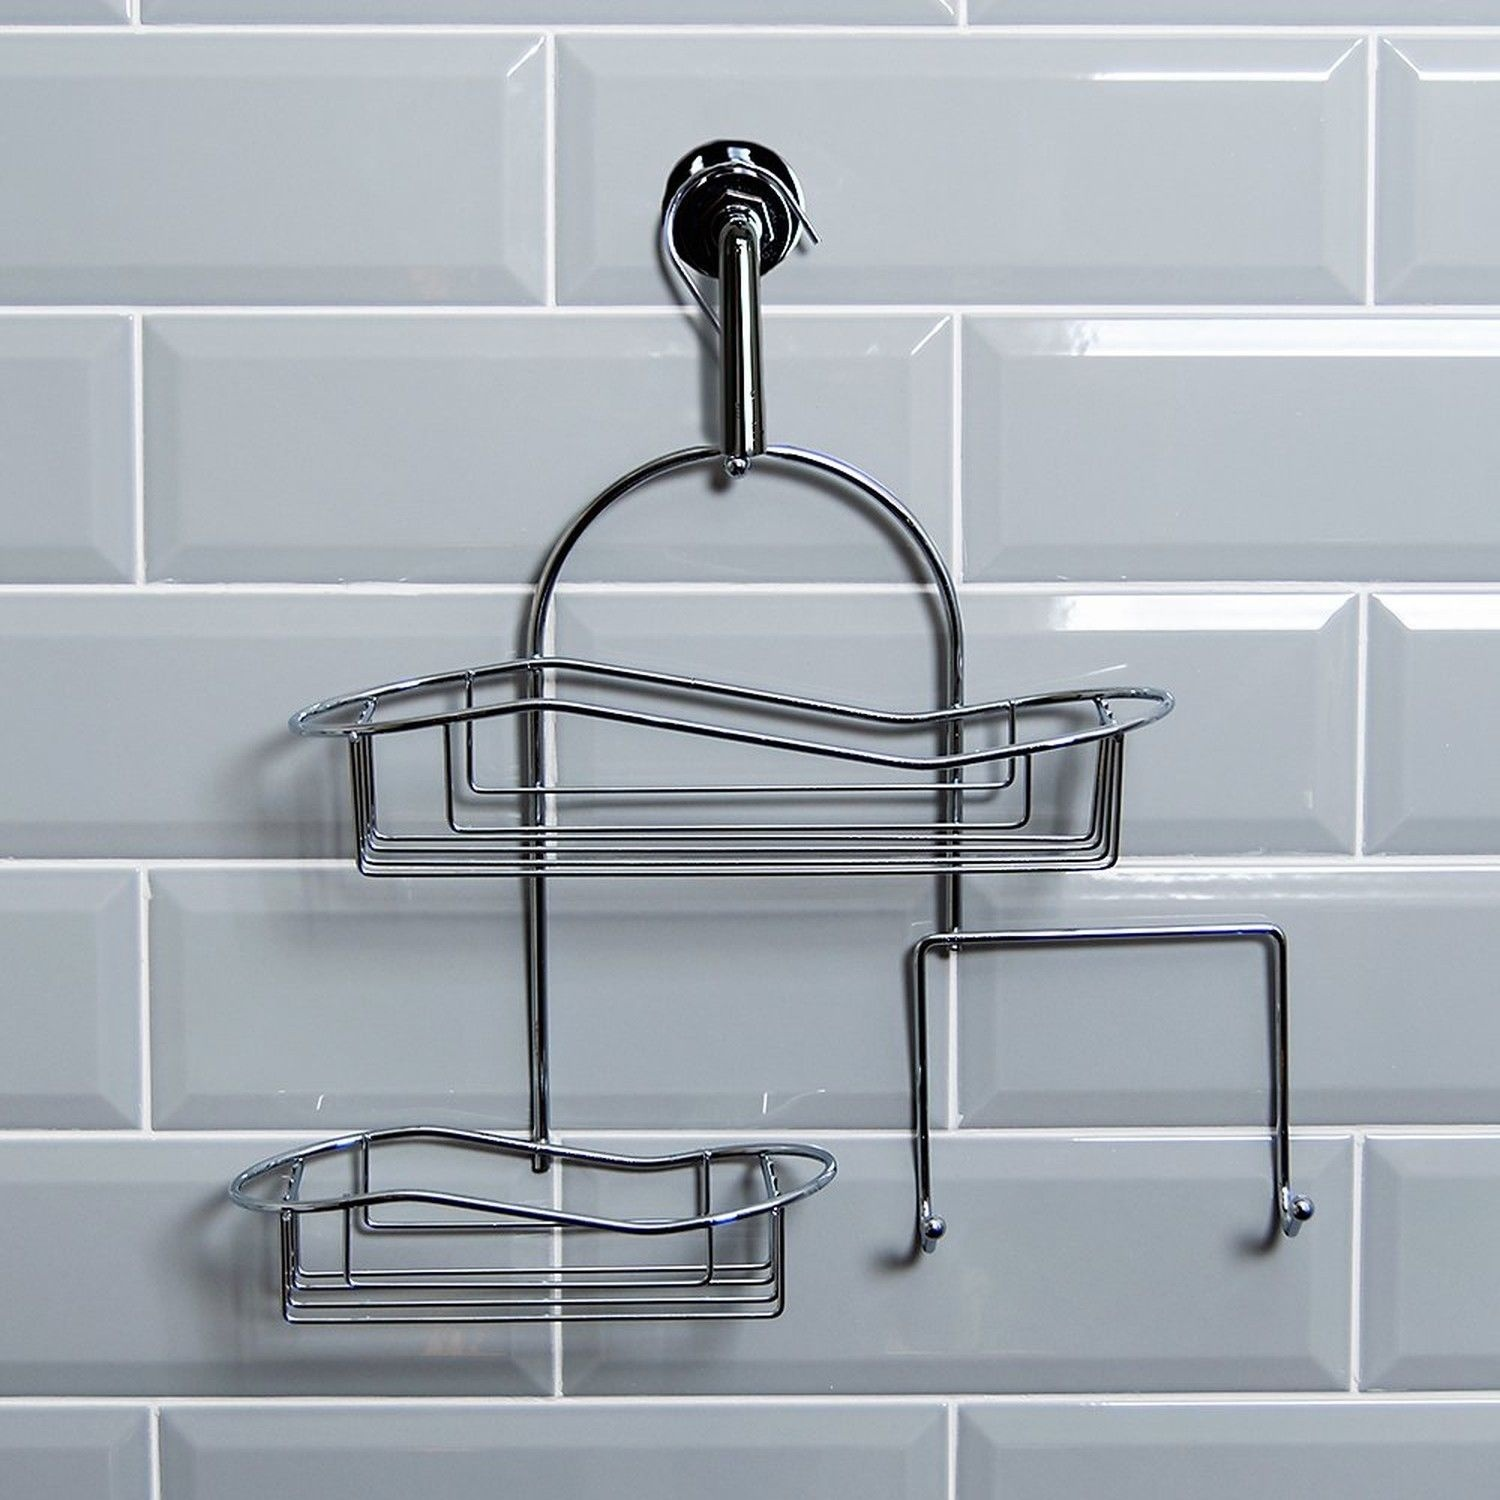 Hanging Shower Caddy Bathroom Homeware: Buy Online from Fishpond.co.nz